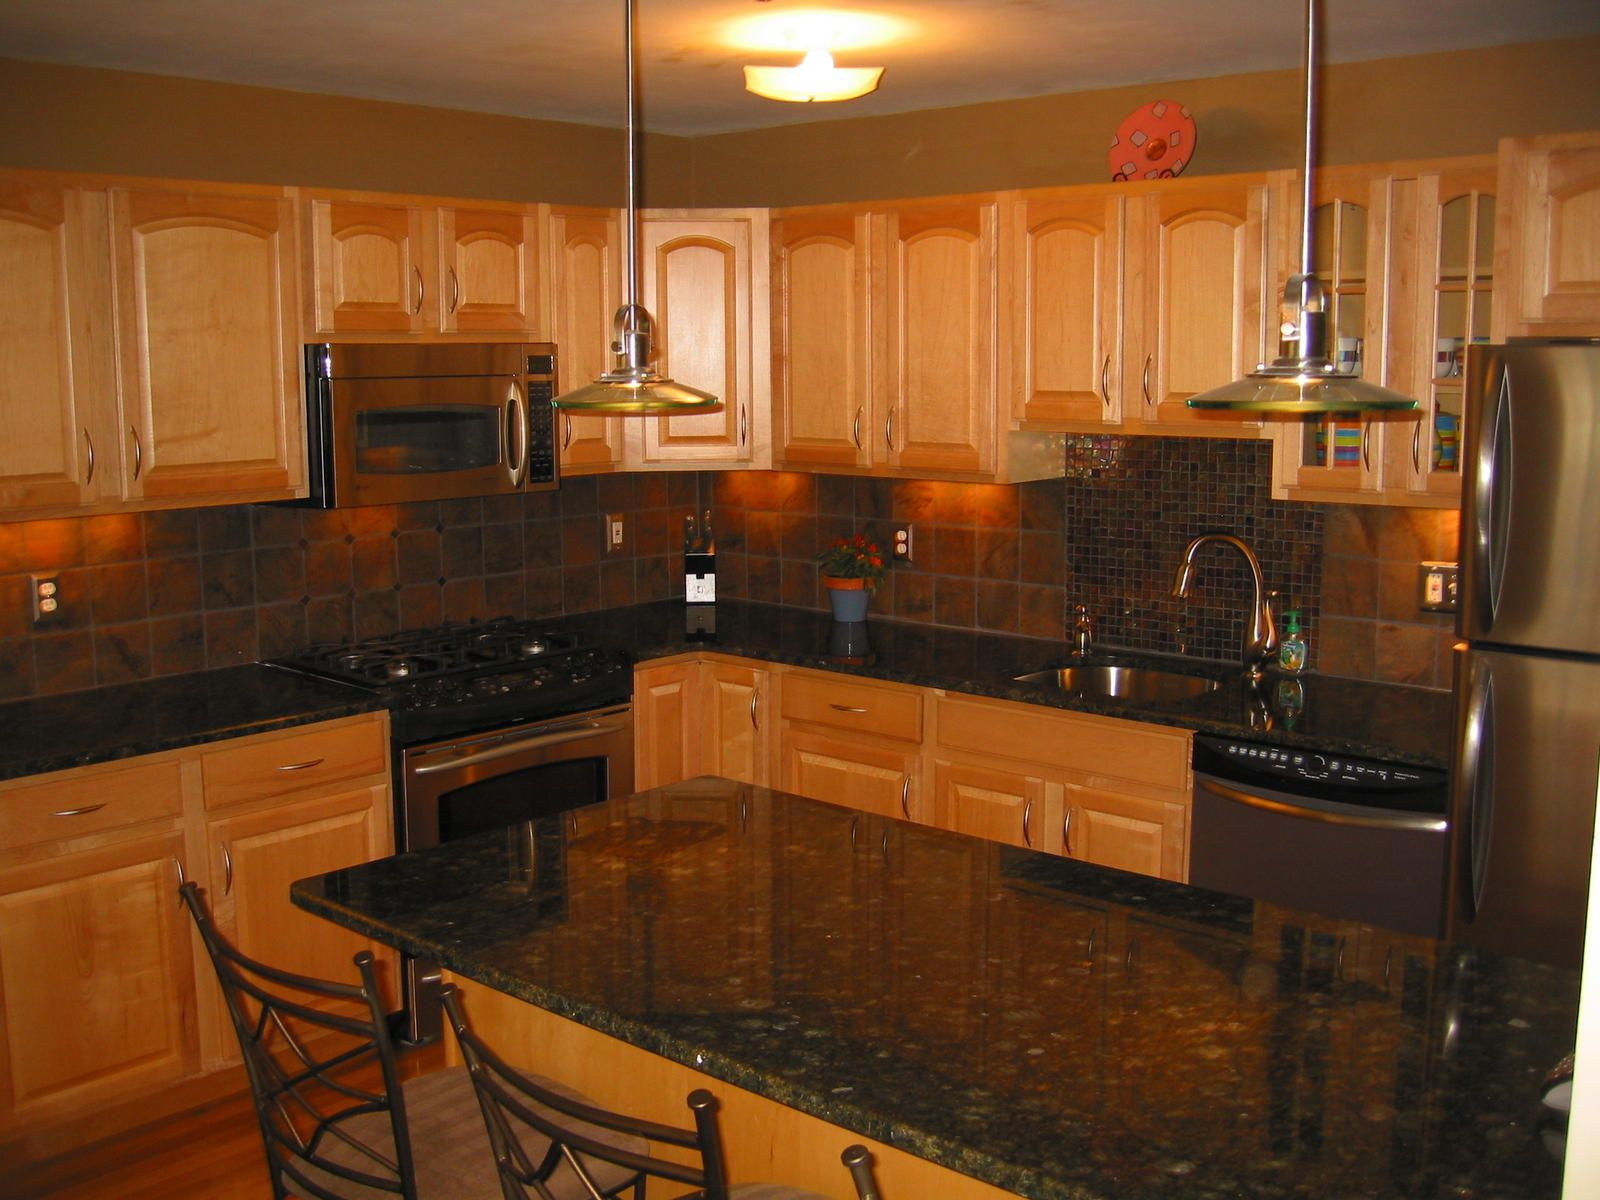 Oak Cabinets With Granite Countertops Pictures Uba Tuba Granite Countertops On Pinterest Granite Behr